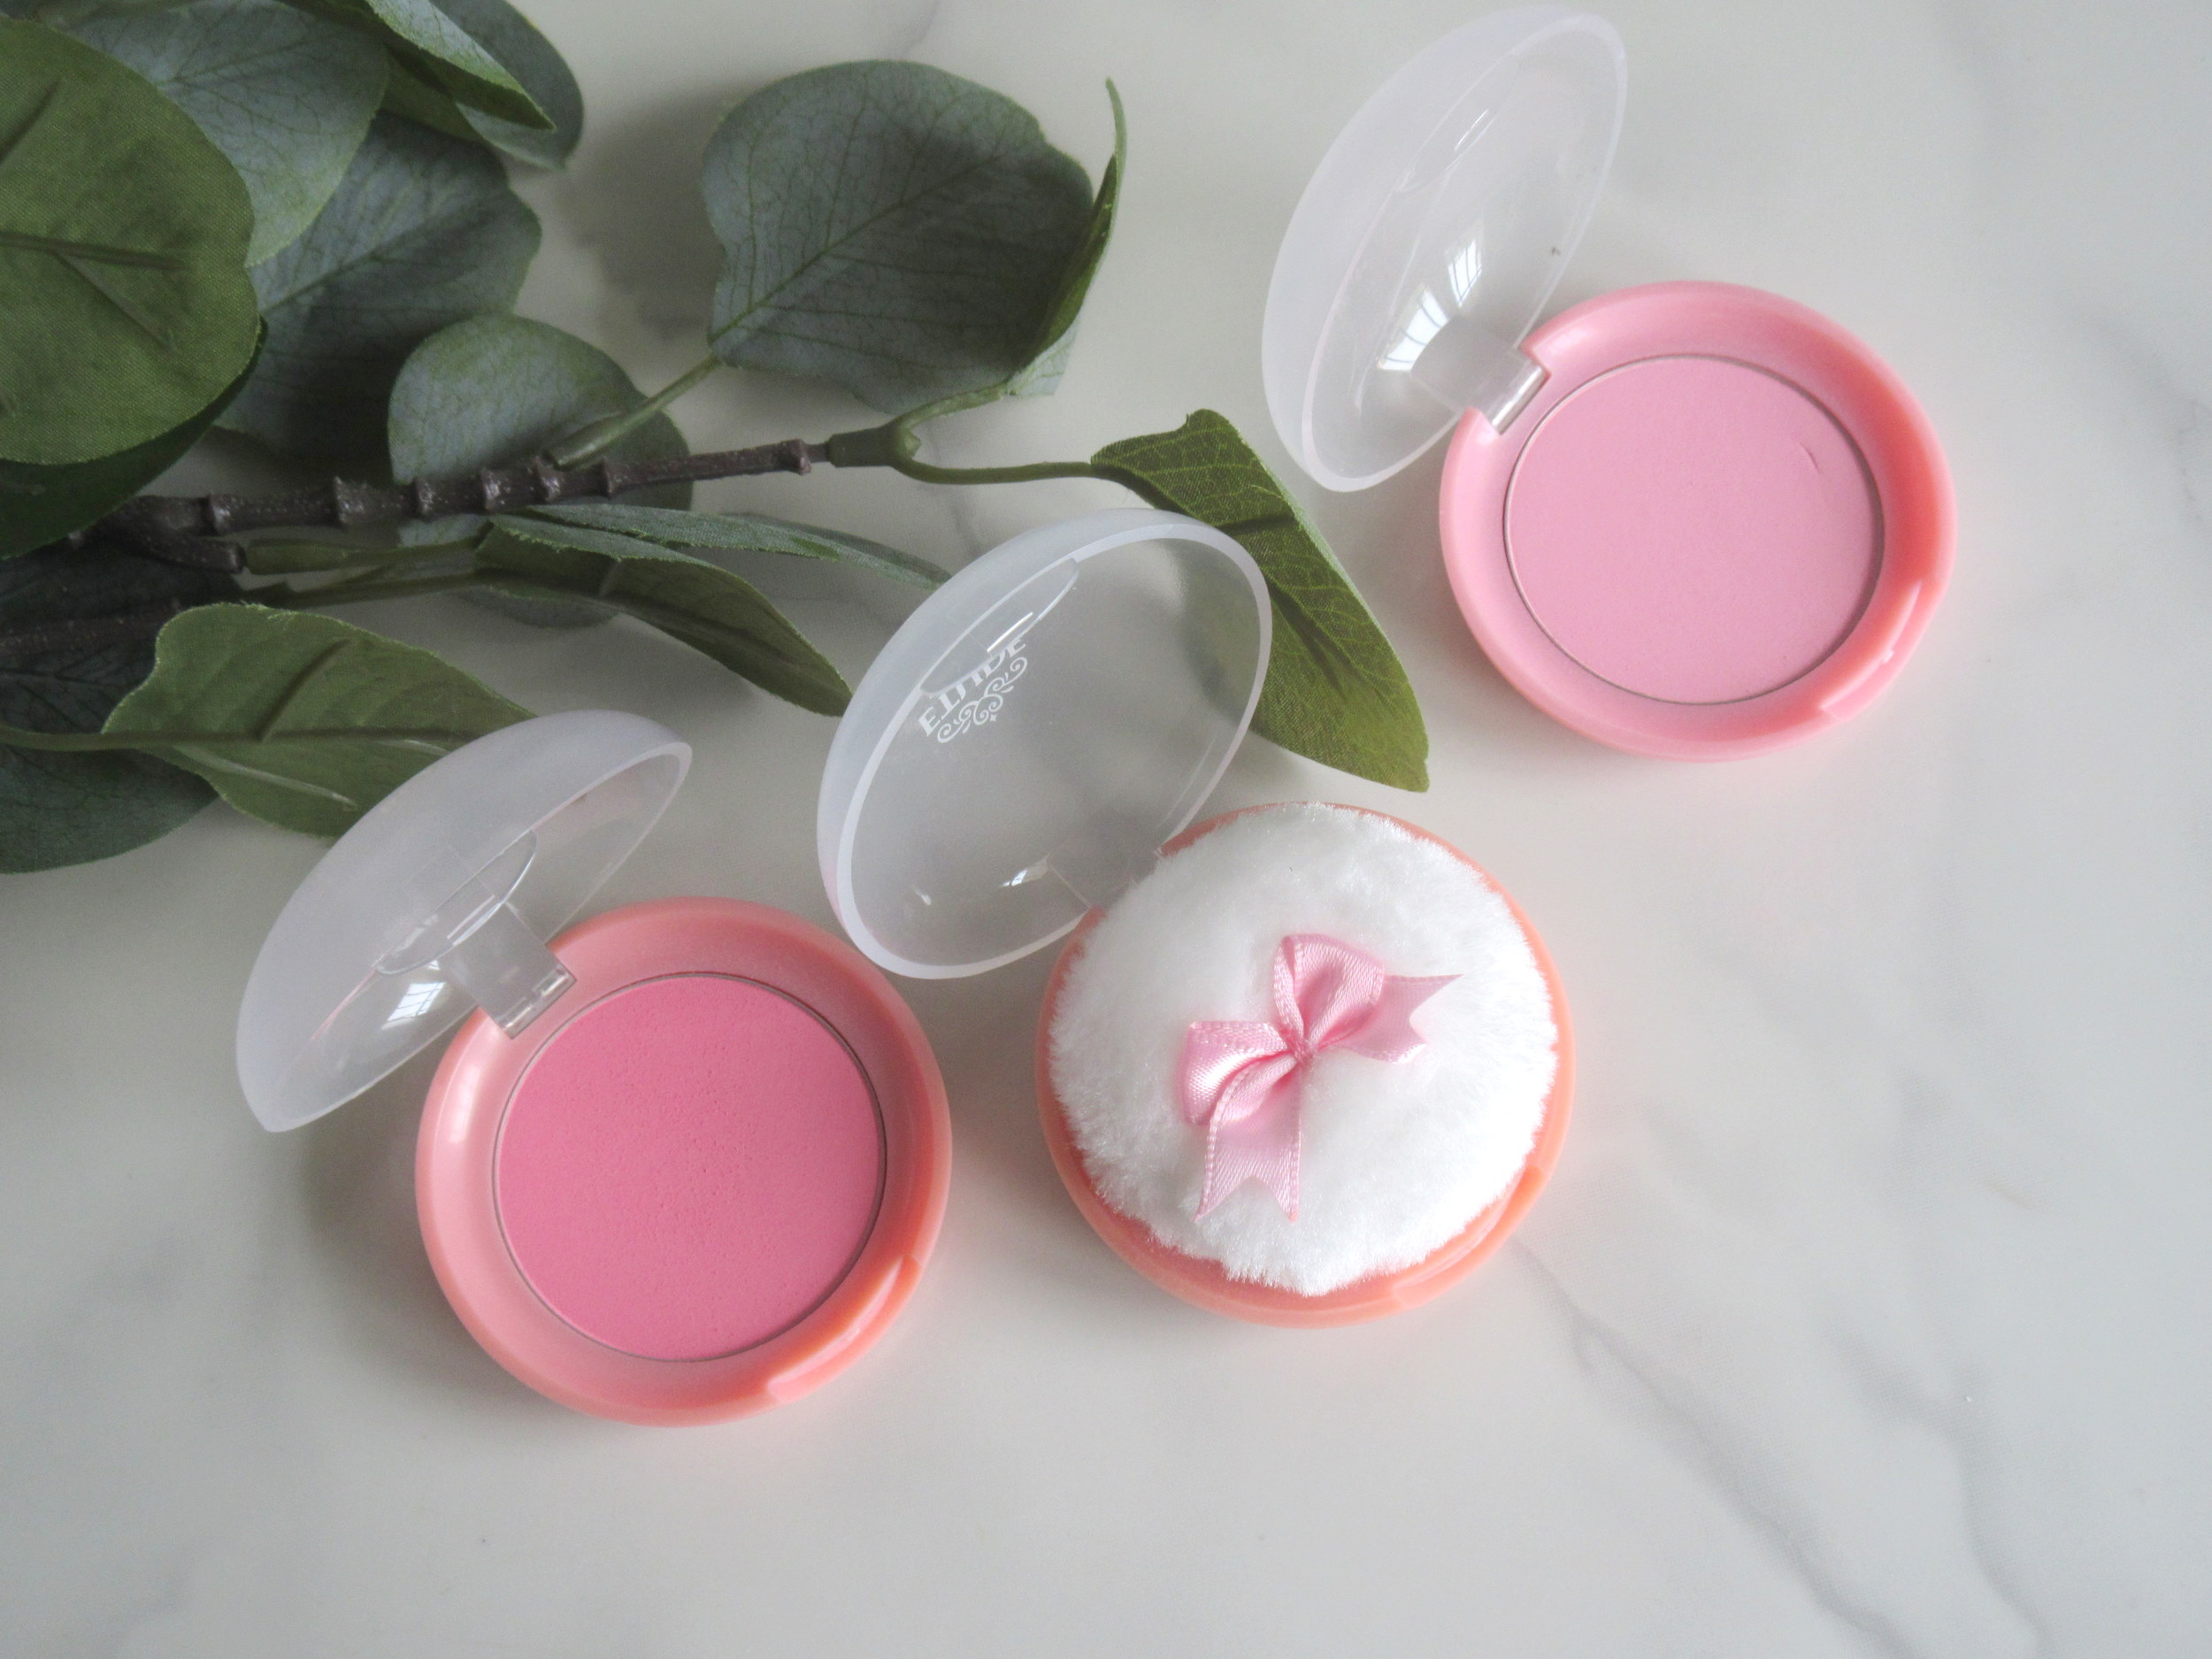 etude house lovely cookie blusher pk002 grapefruit jelly, etude house grapefruit jelly, etude house lovely cookie blusher pk001 strawberry choux, etude house strawberry choux, etude house lovely cookie blusher pk003 peach parfait, etude house peach parfait